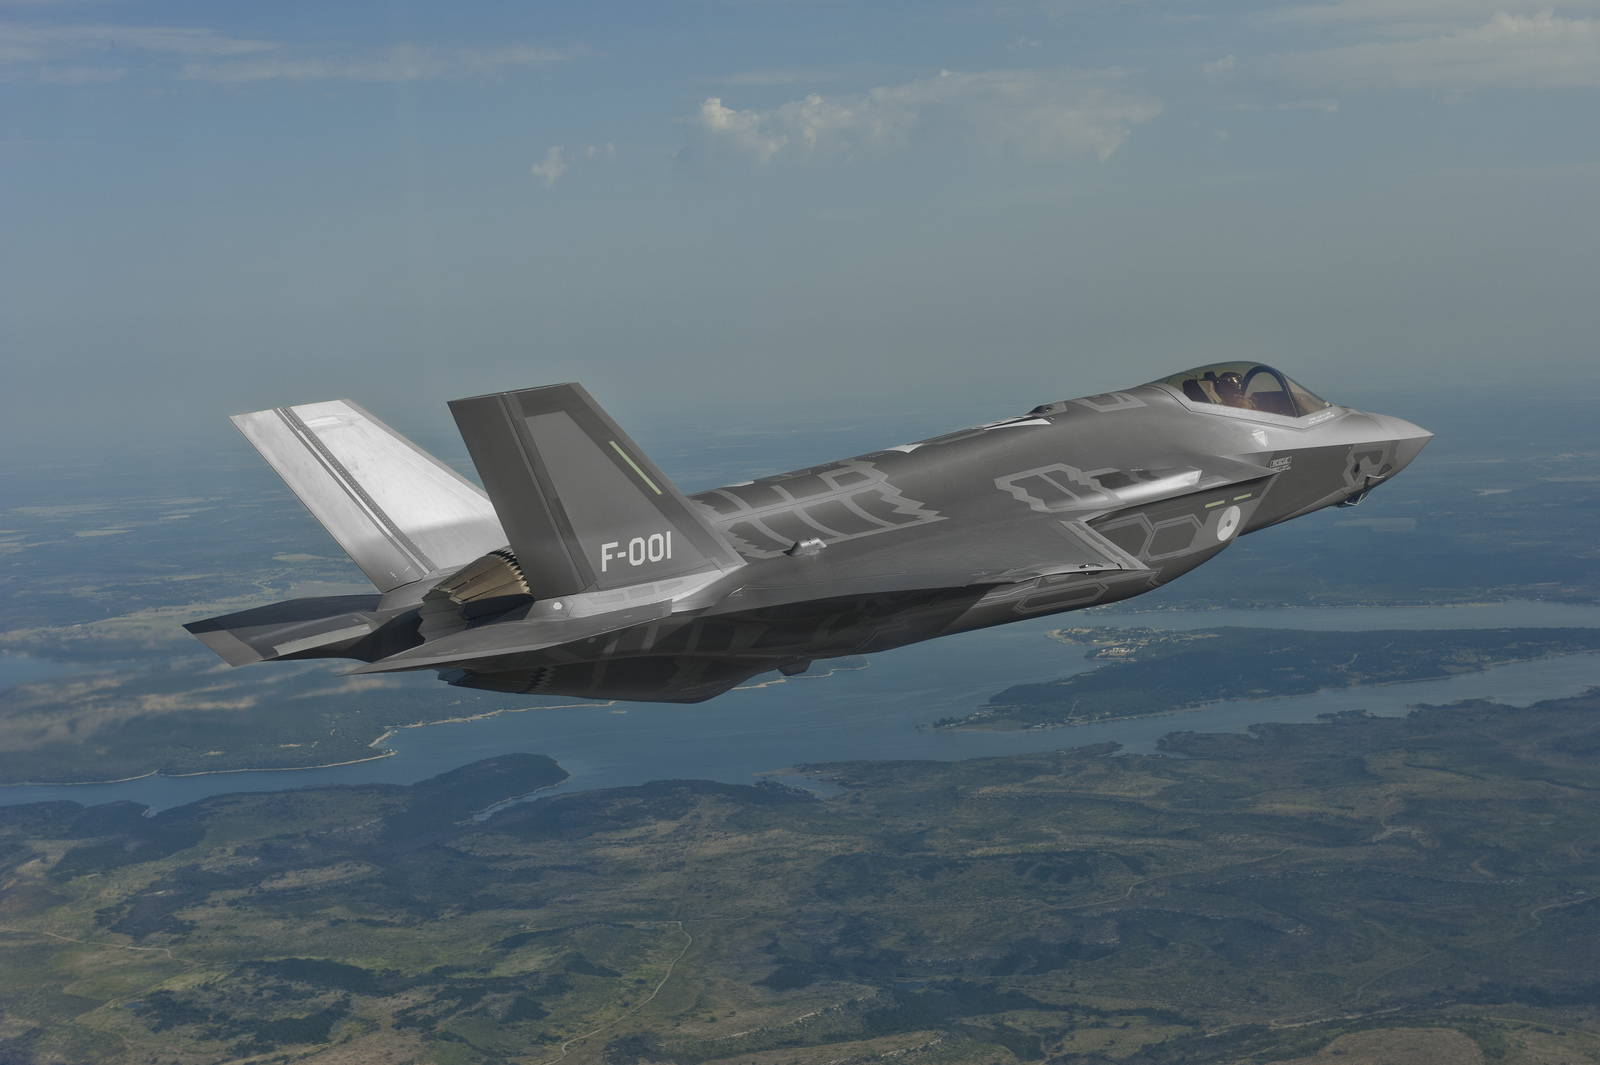 No way an F-35 will ever match a Typhoon fighter jet in